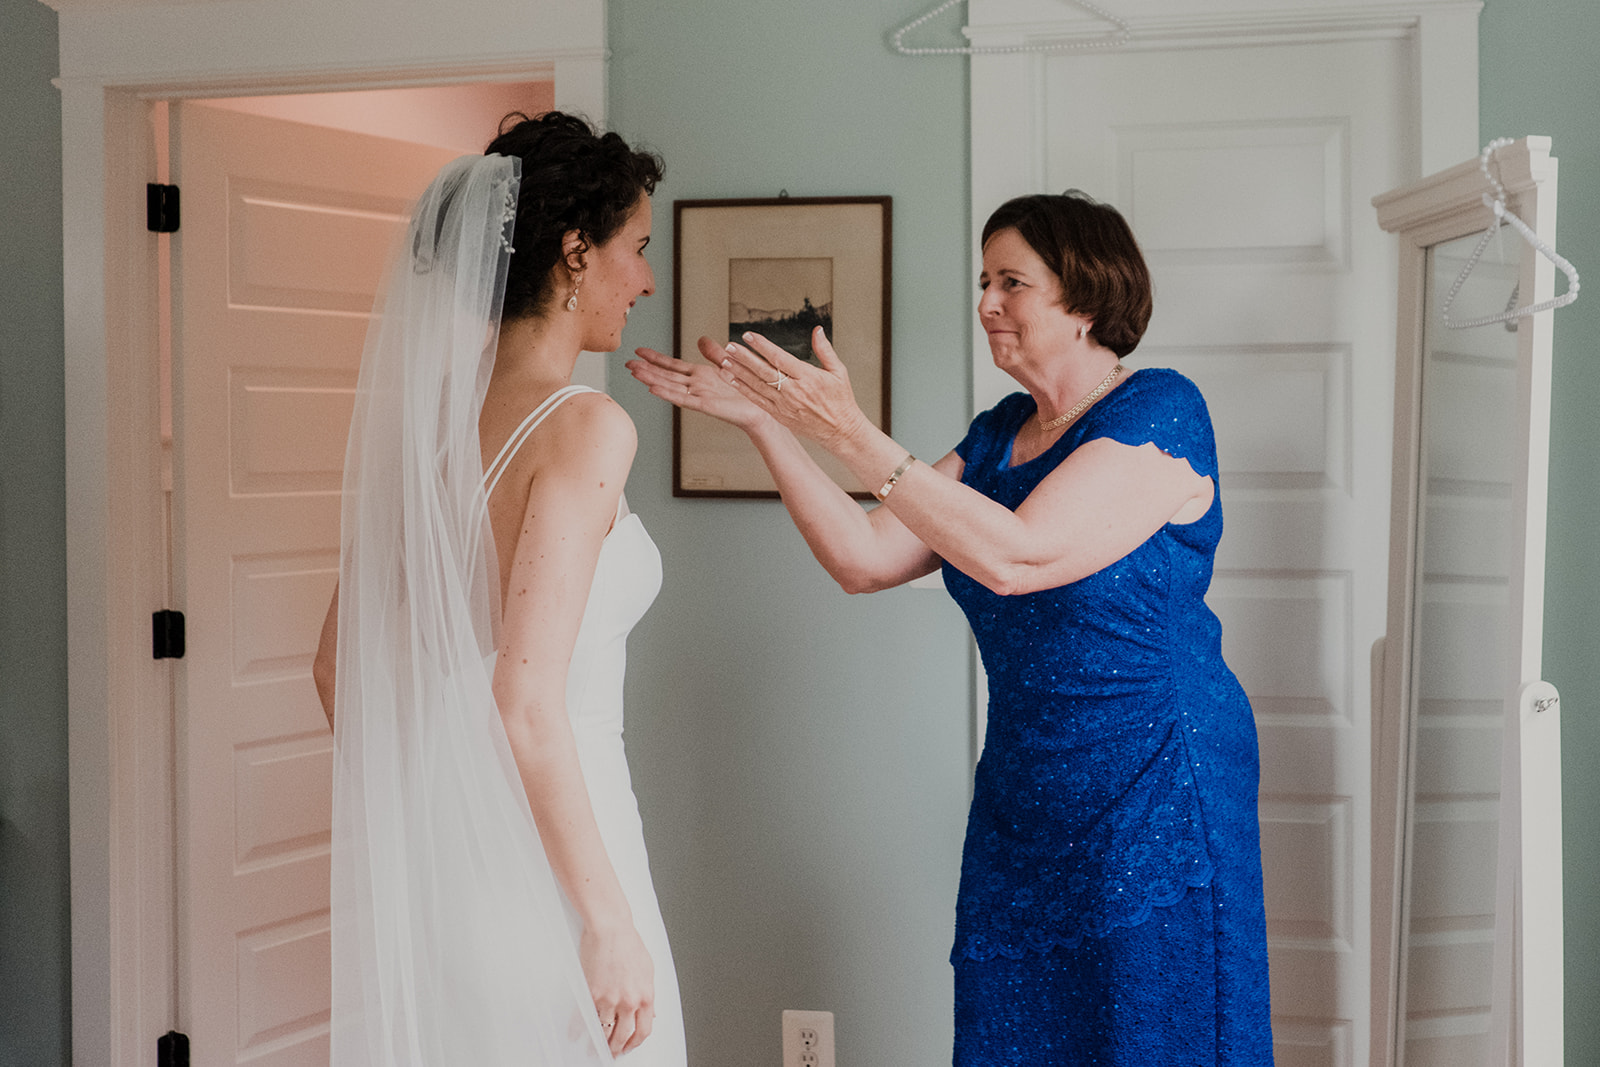 The mother of the bride reaches out to her daughter on her wedding day at Blue Hill Farm in Waterford, VA.